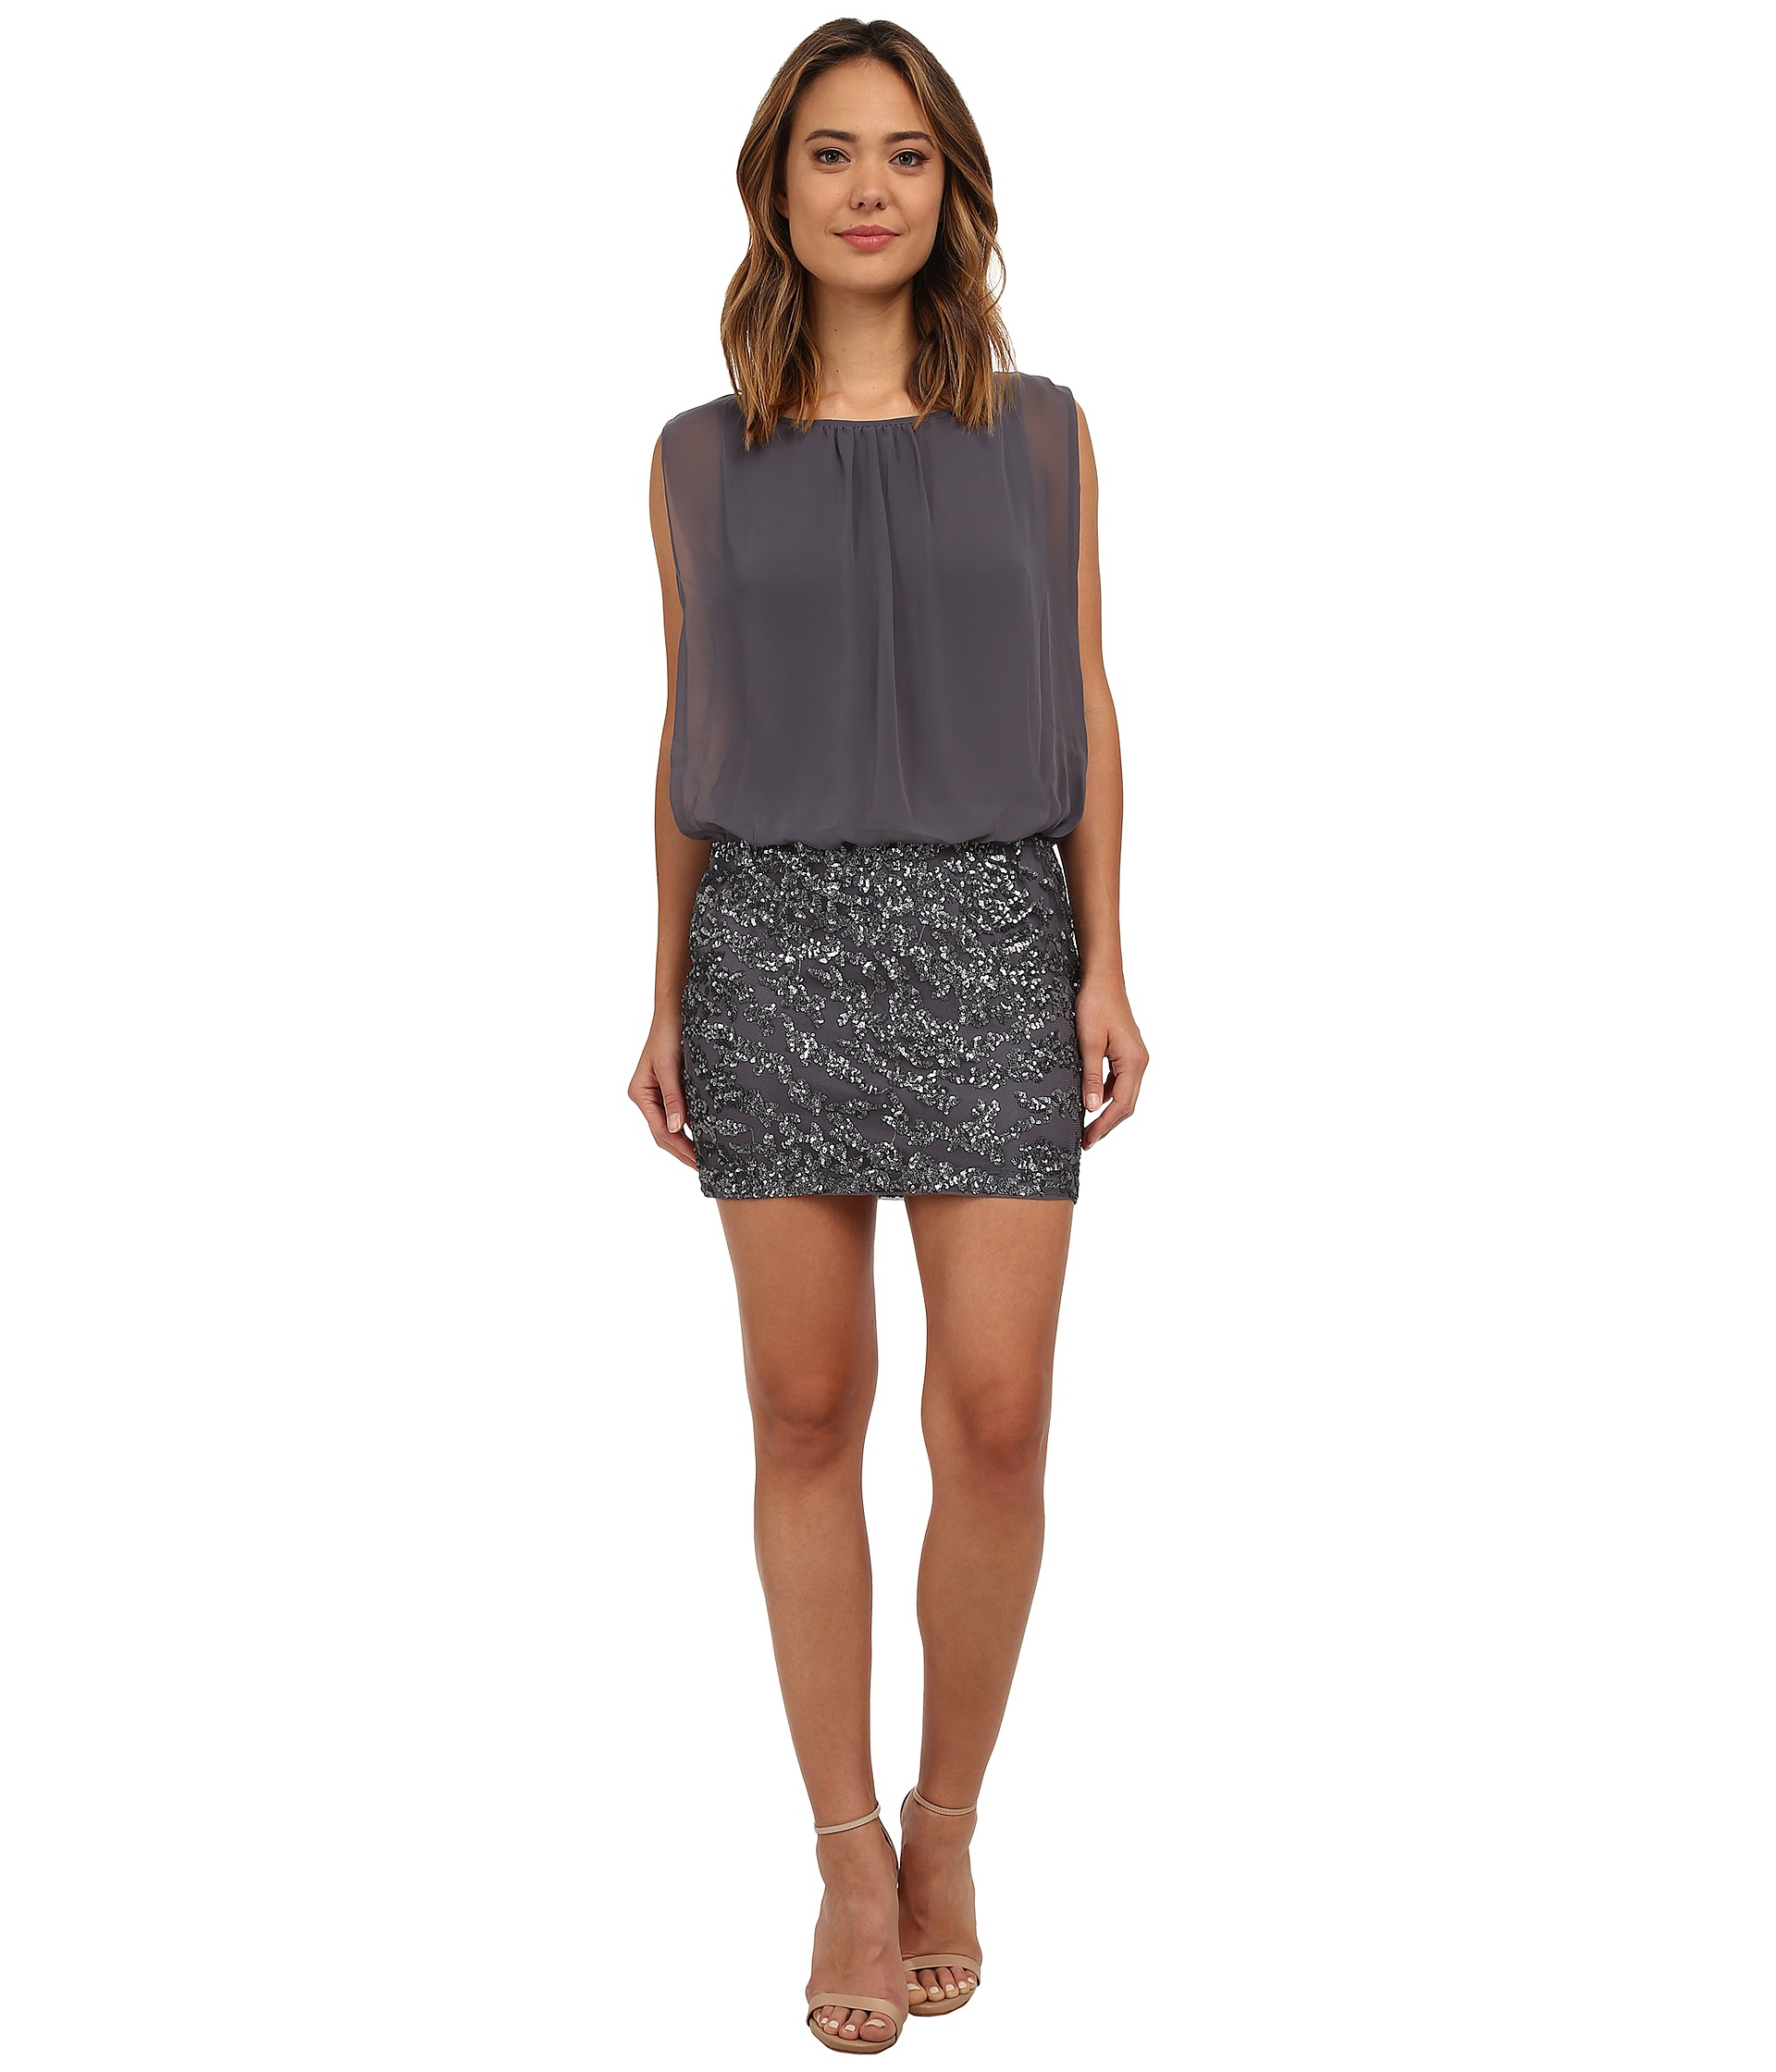 Aidan mattox Blouson Dress W/ Novelty Sequin Skirt in Gray | Lyst